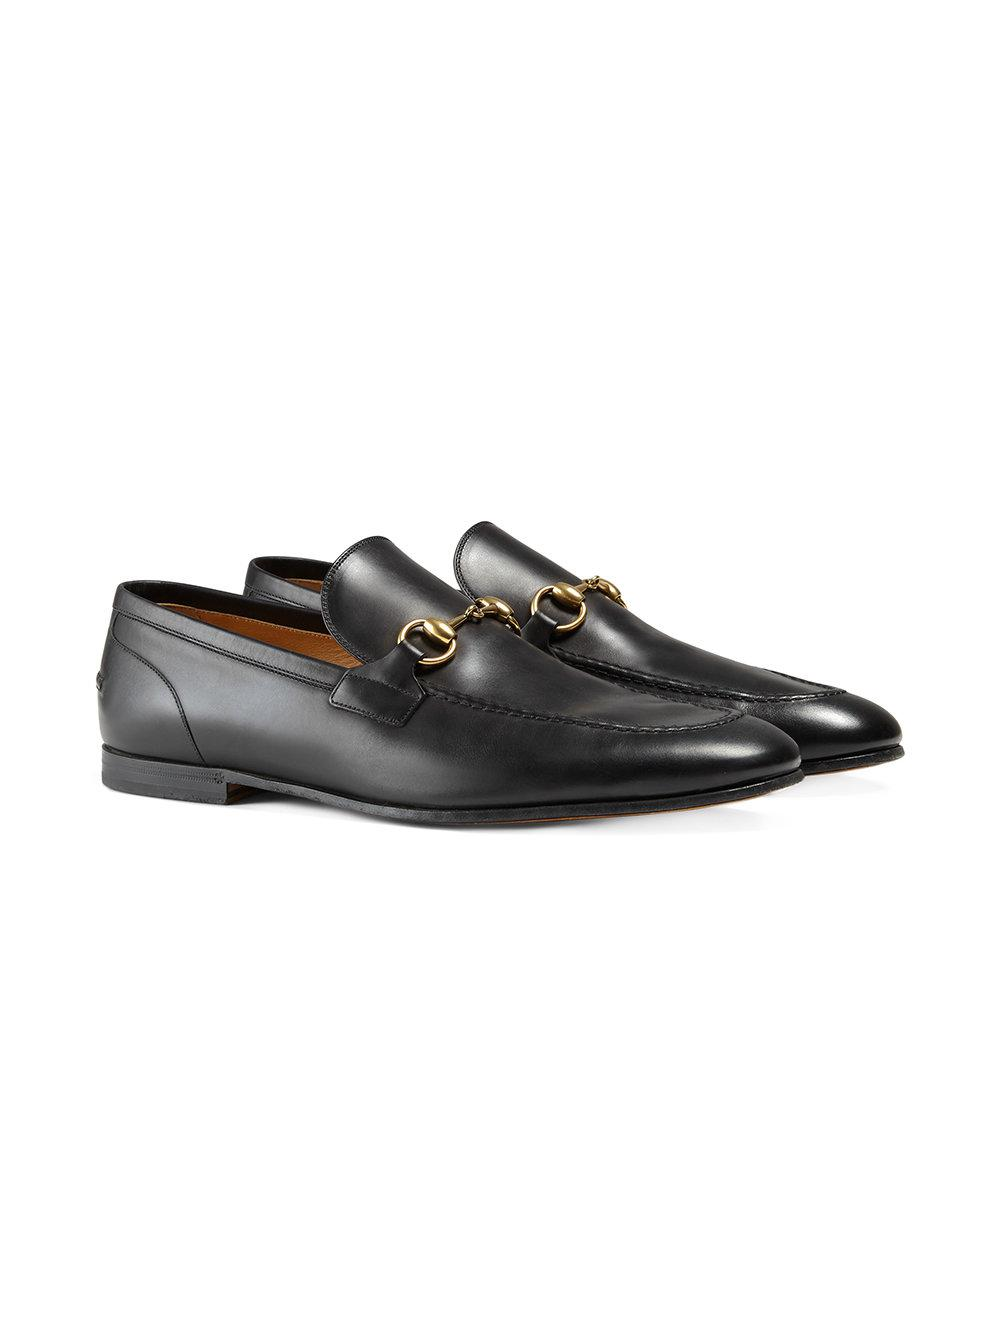 4dd1b324a Gucci Jordaan Leather Loafer in Black for Men - Save 5% - Lyst